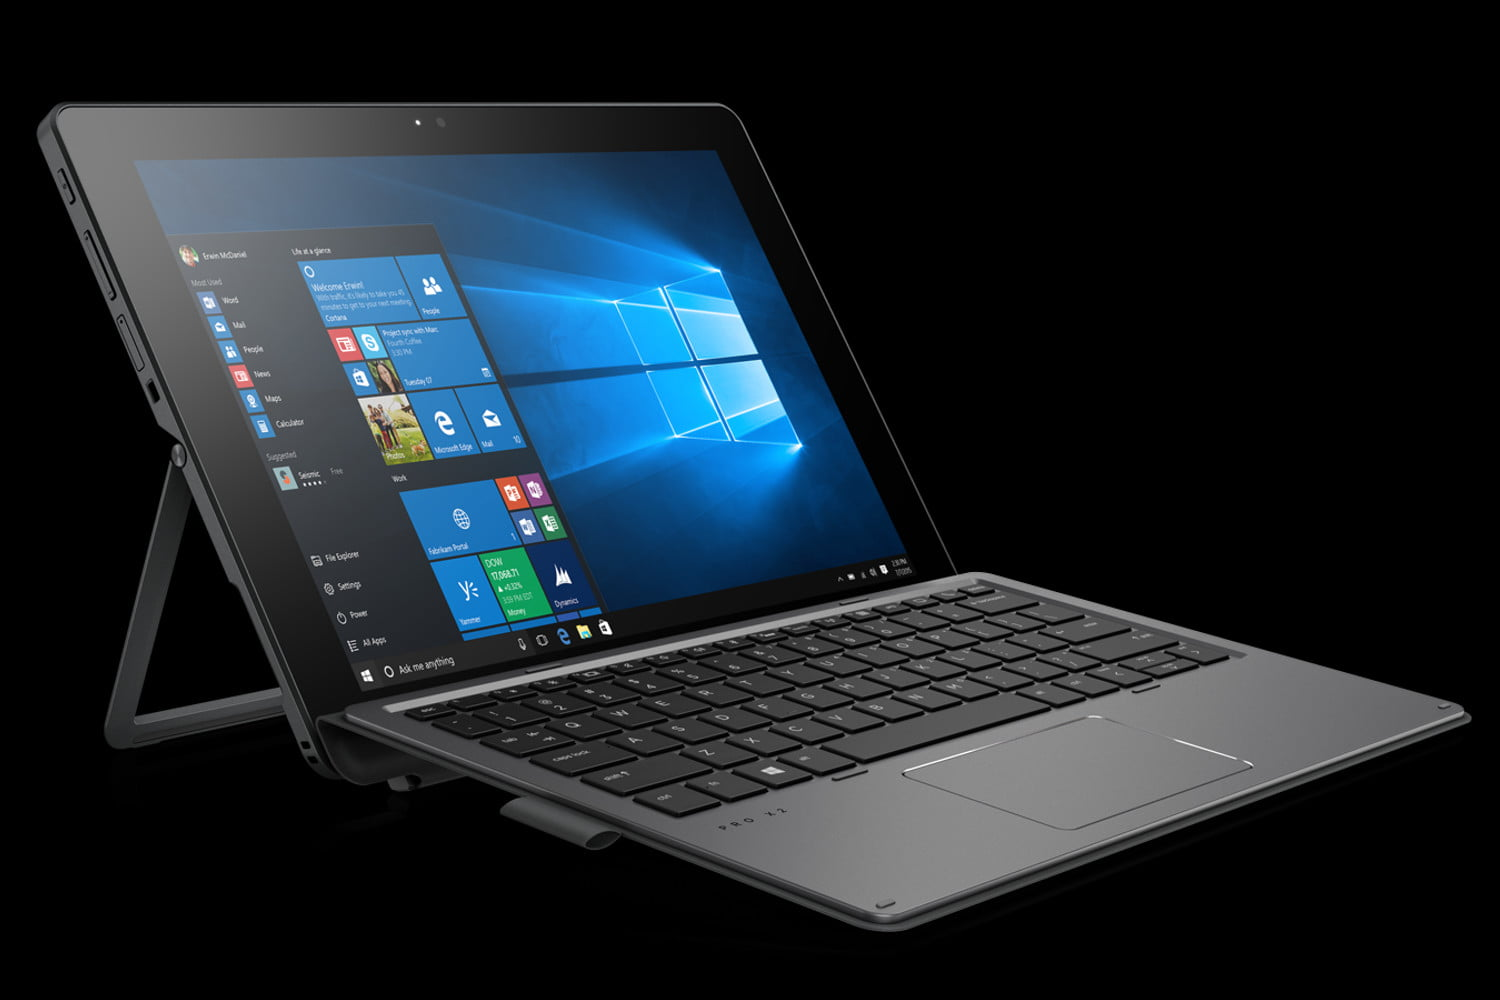 76507b4a436 HP Launches Pro x2 612 G2 2-in-1 PC, Peripherals, Accessories, And USB  Docks At MWC 2017 | Digital Trends